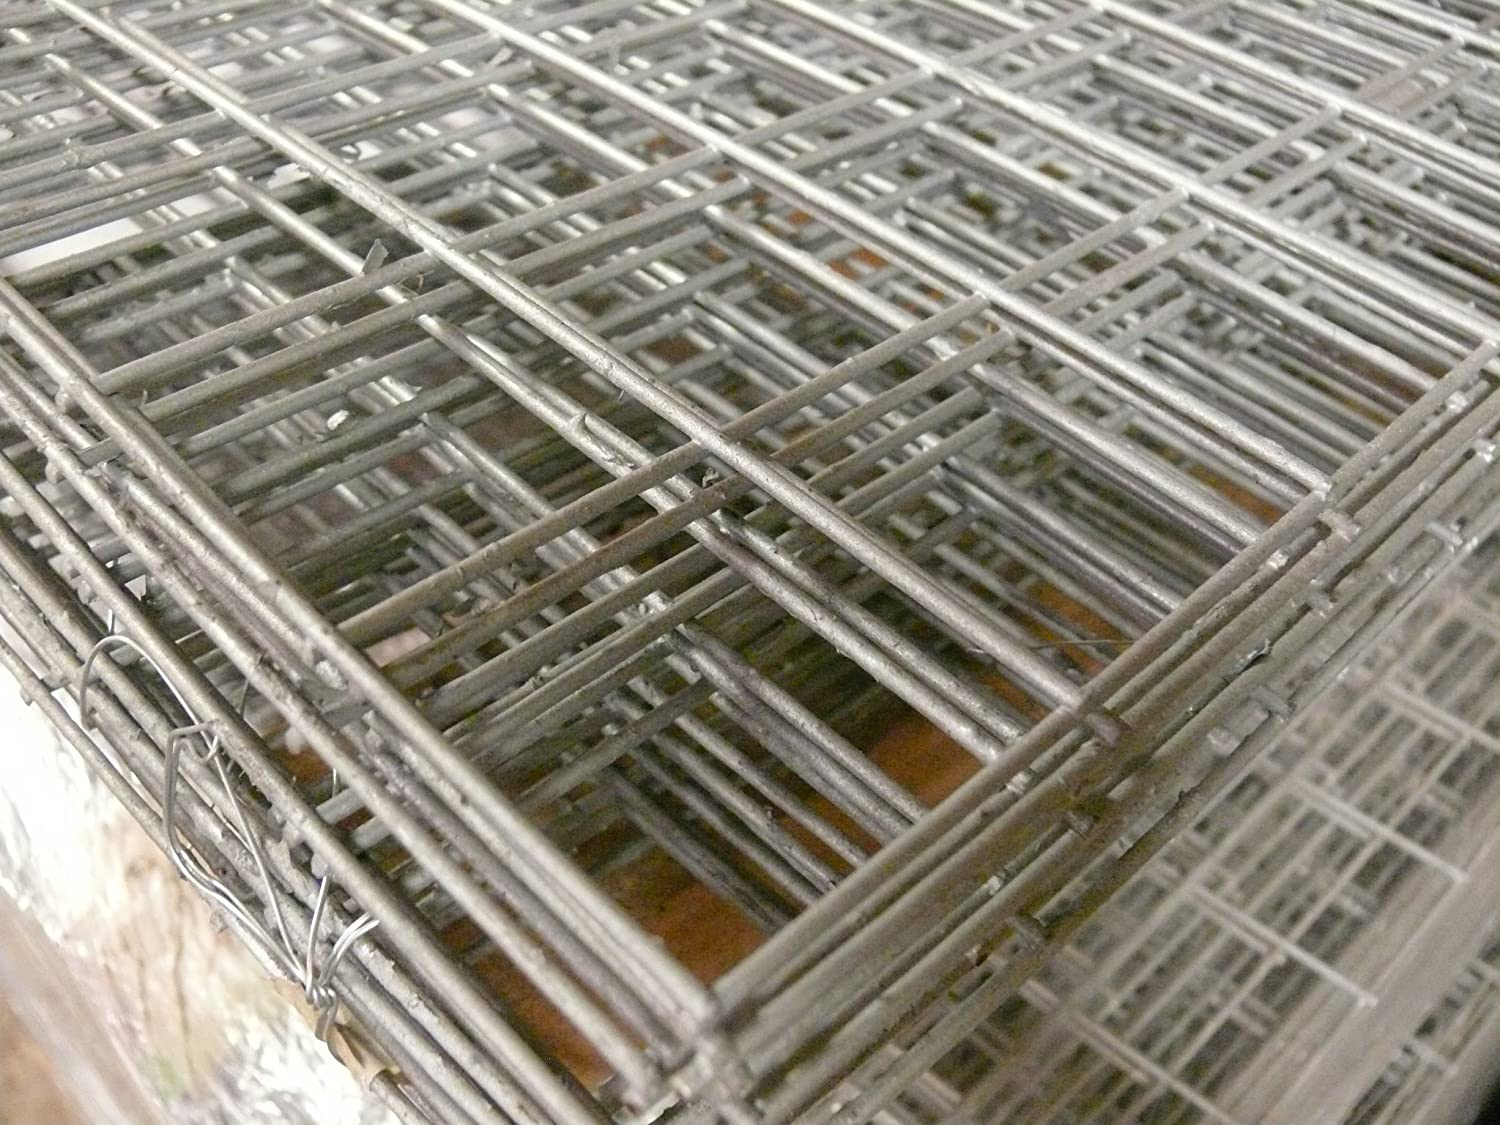 Welded Wire Mesh Panel 6ft x 3ft, 12 gauge 2.5mm wire, 2x2\